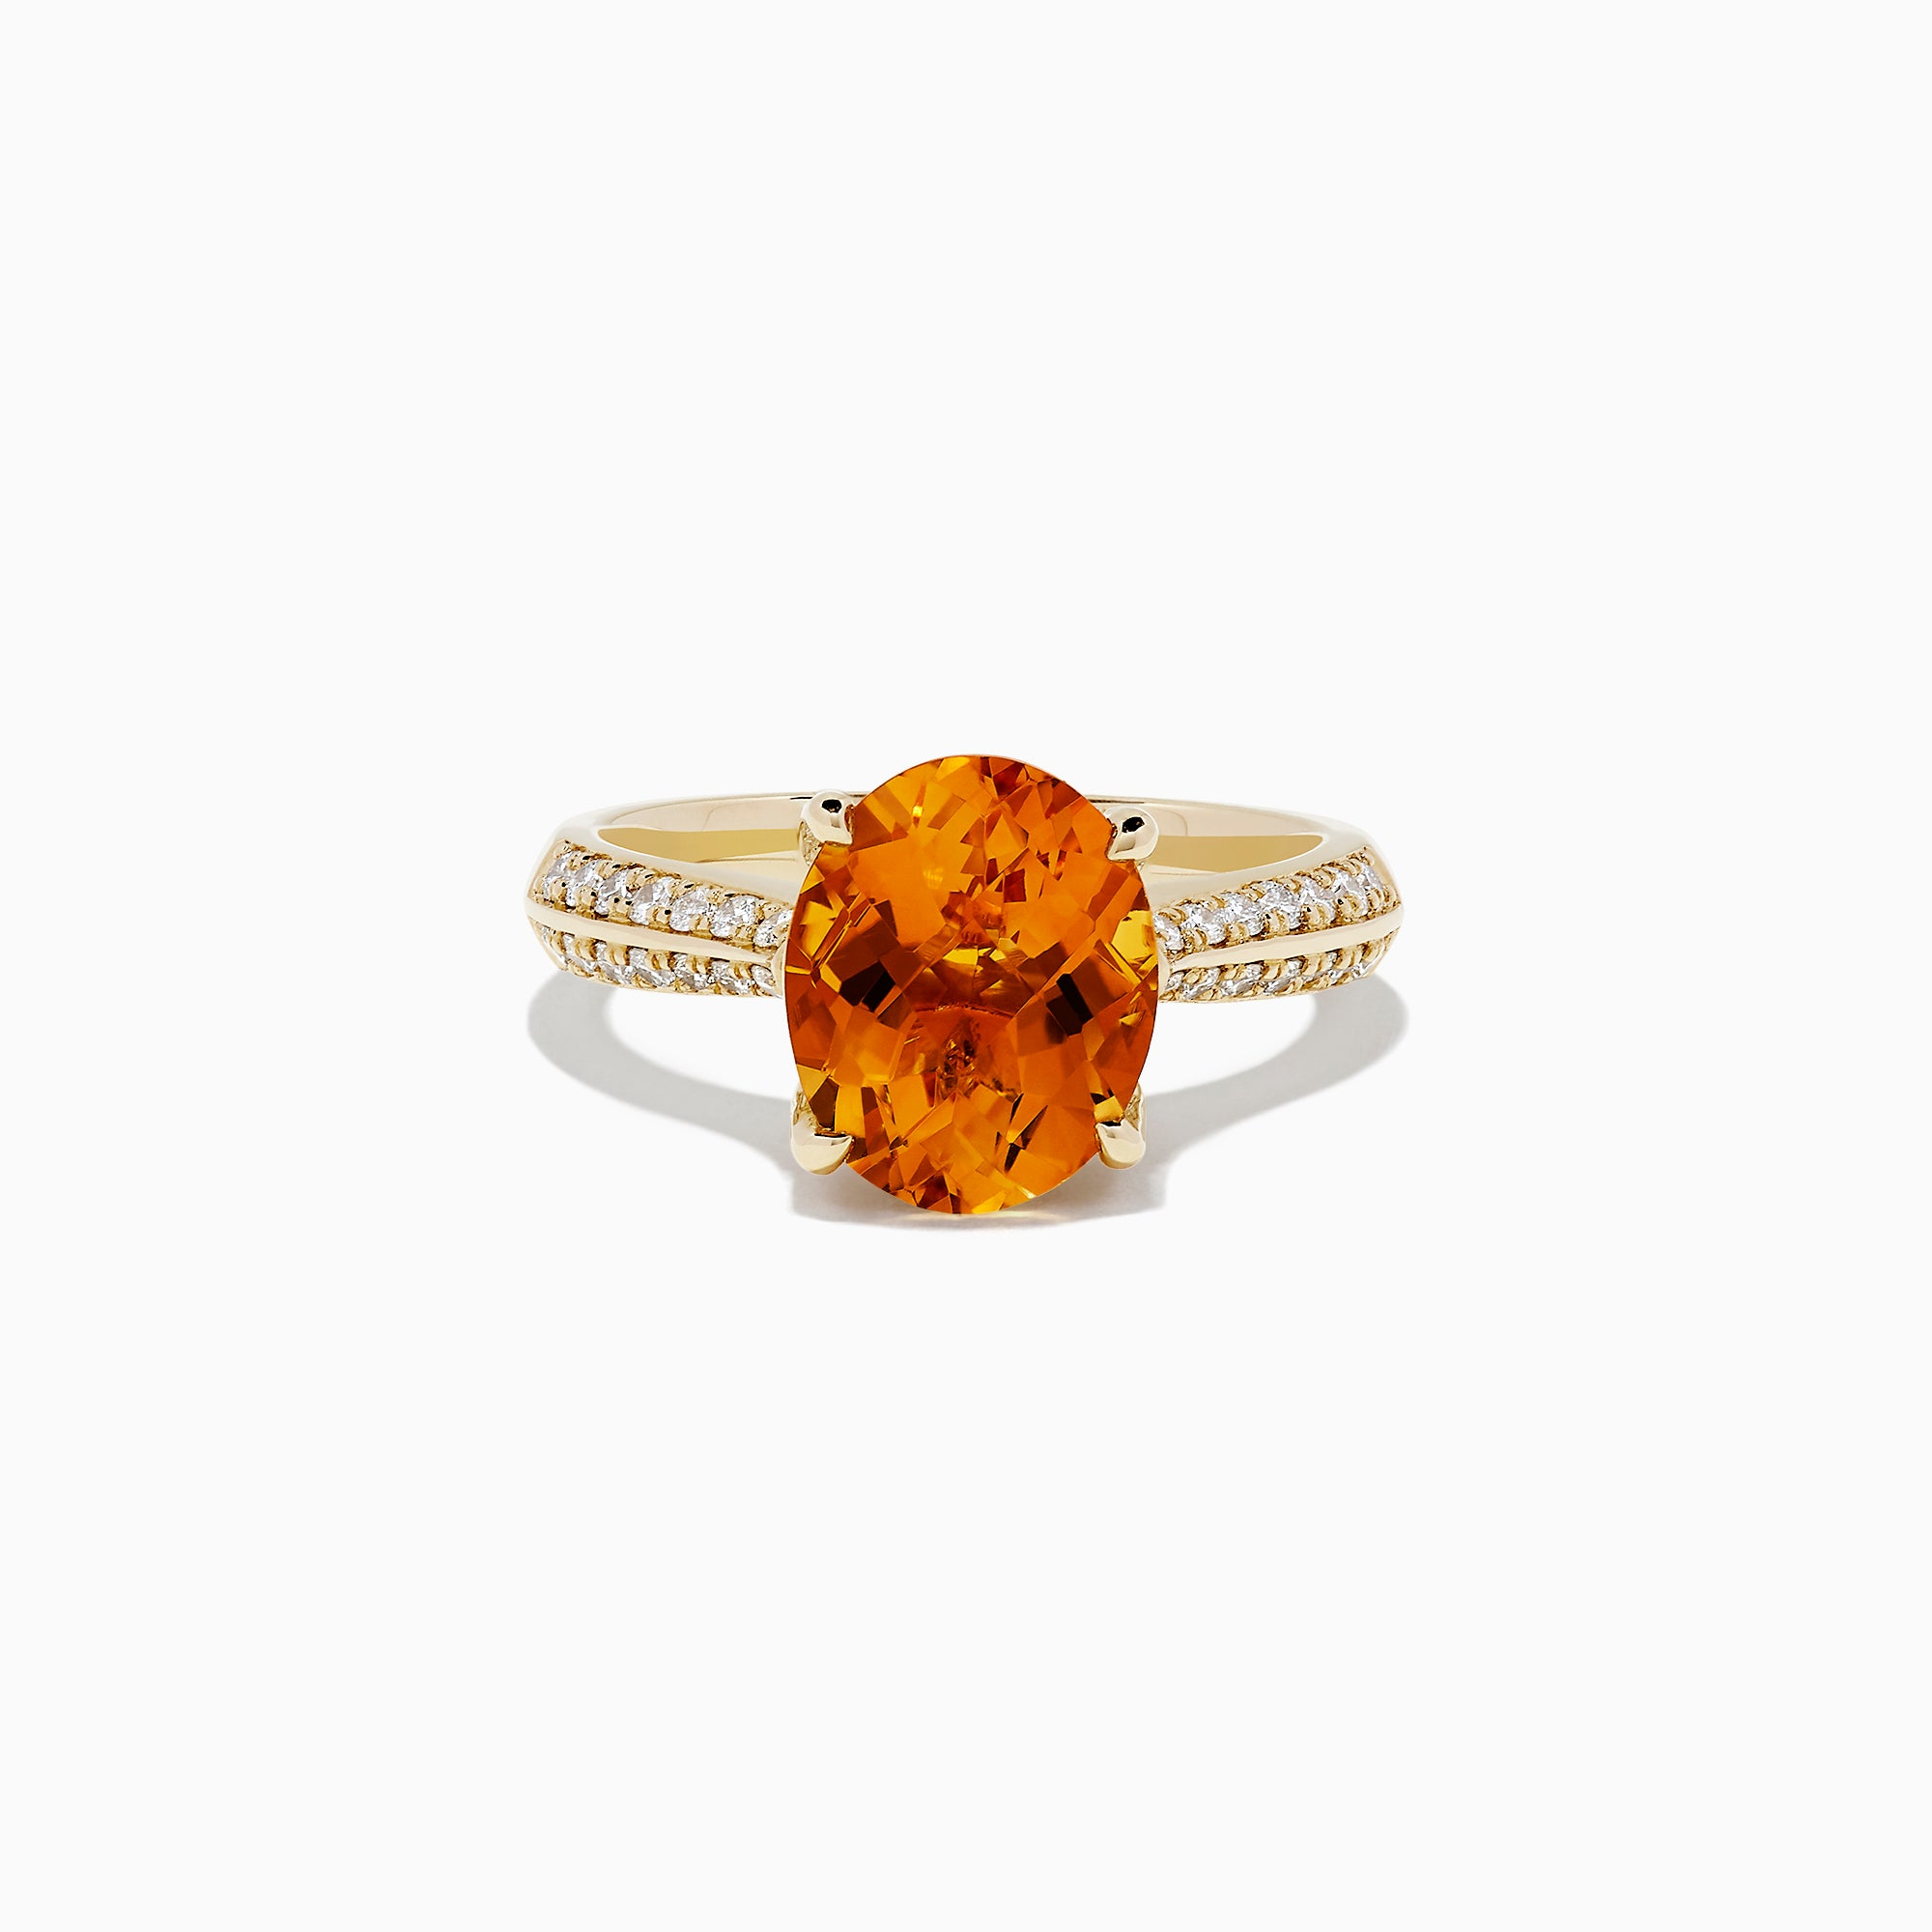 Effy Sunset 14K Yellow Gold Citrine and Diamond Ring, 3.58 TCW